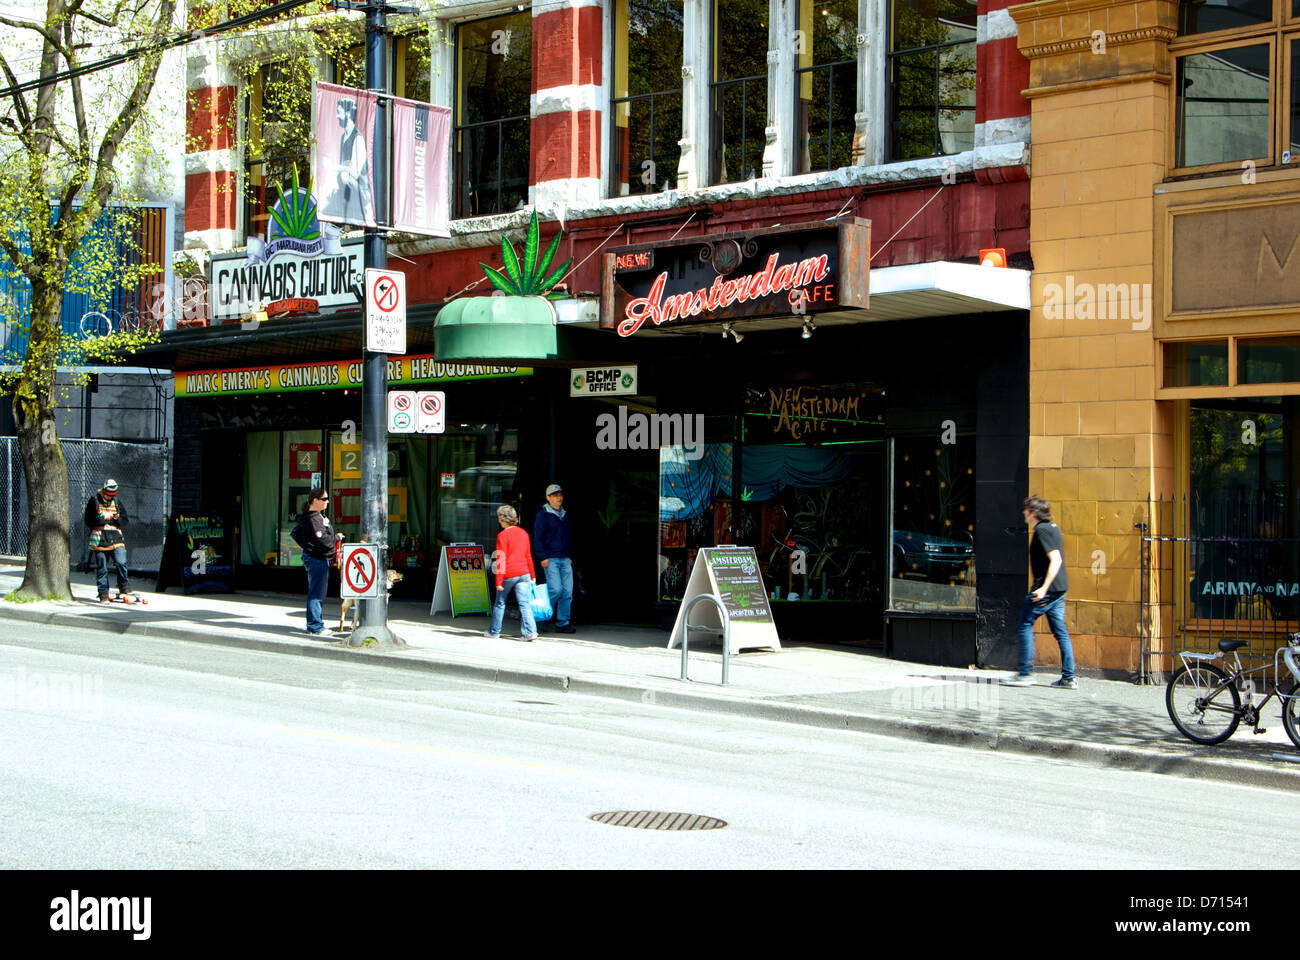 Marc Emery Cannabis Culture New Amsterdam Cafe Hastings Street downtown Vancouver pot shops - Stock Image